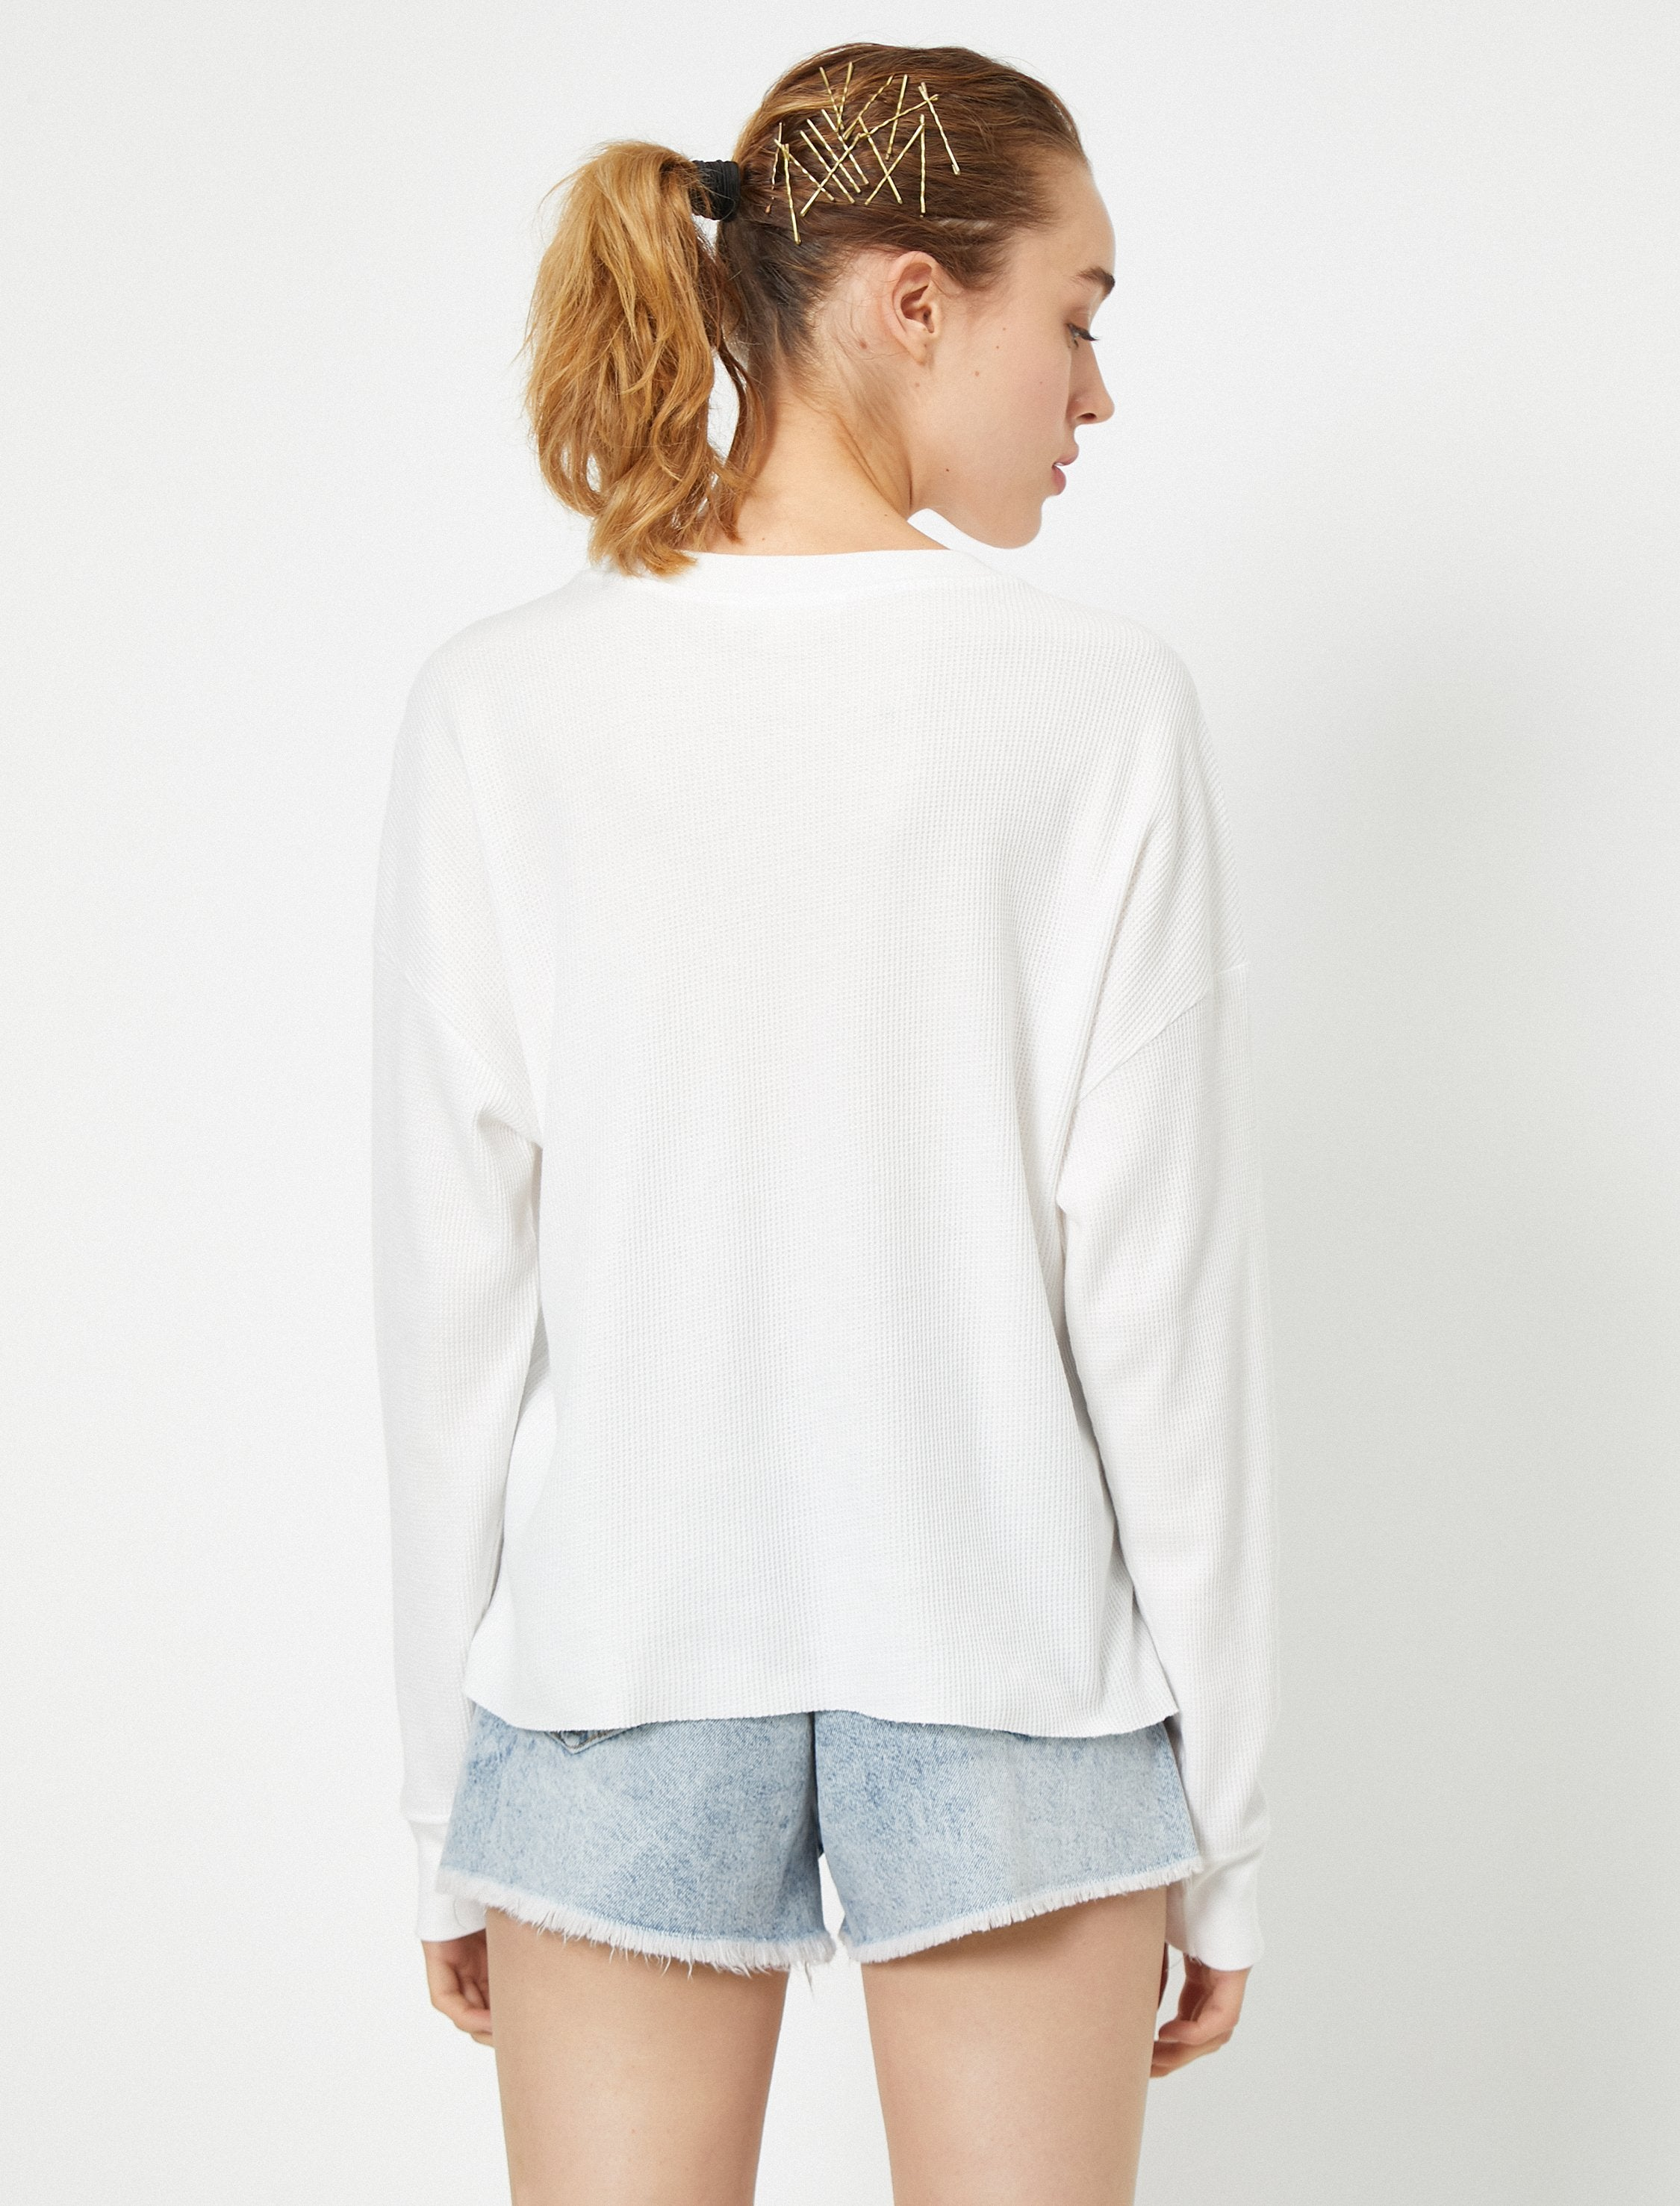 Loose Fit Long Sleeve Tshirt in White